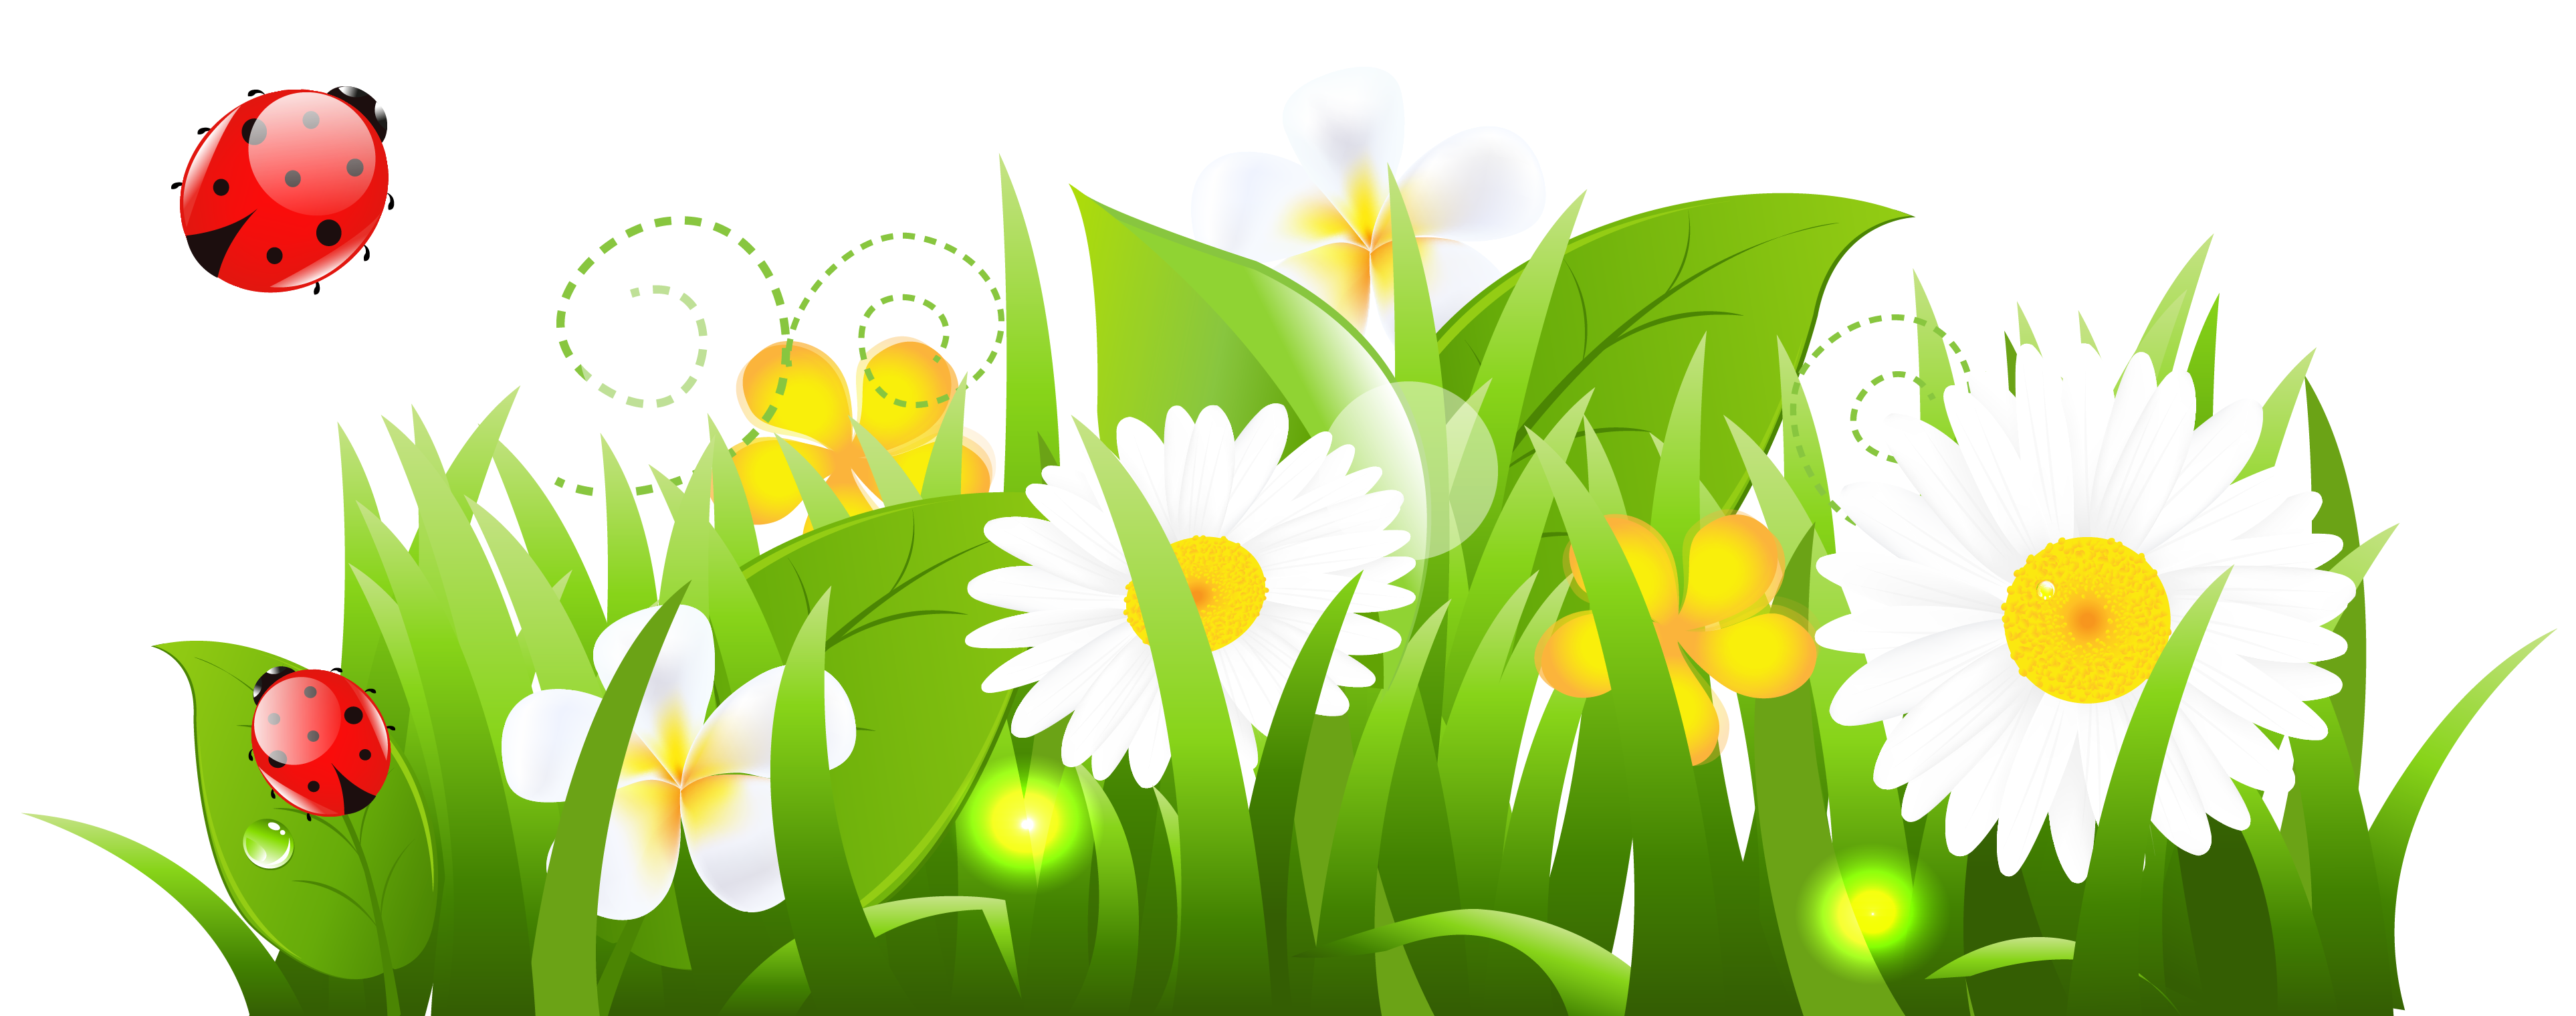 Grass and flowers clipart hdclipartall